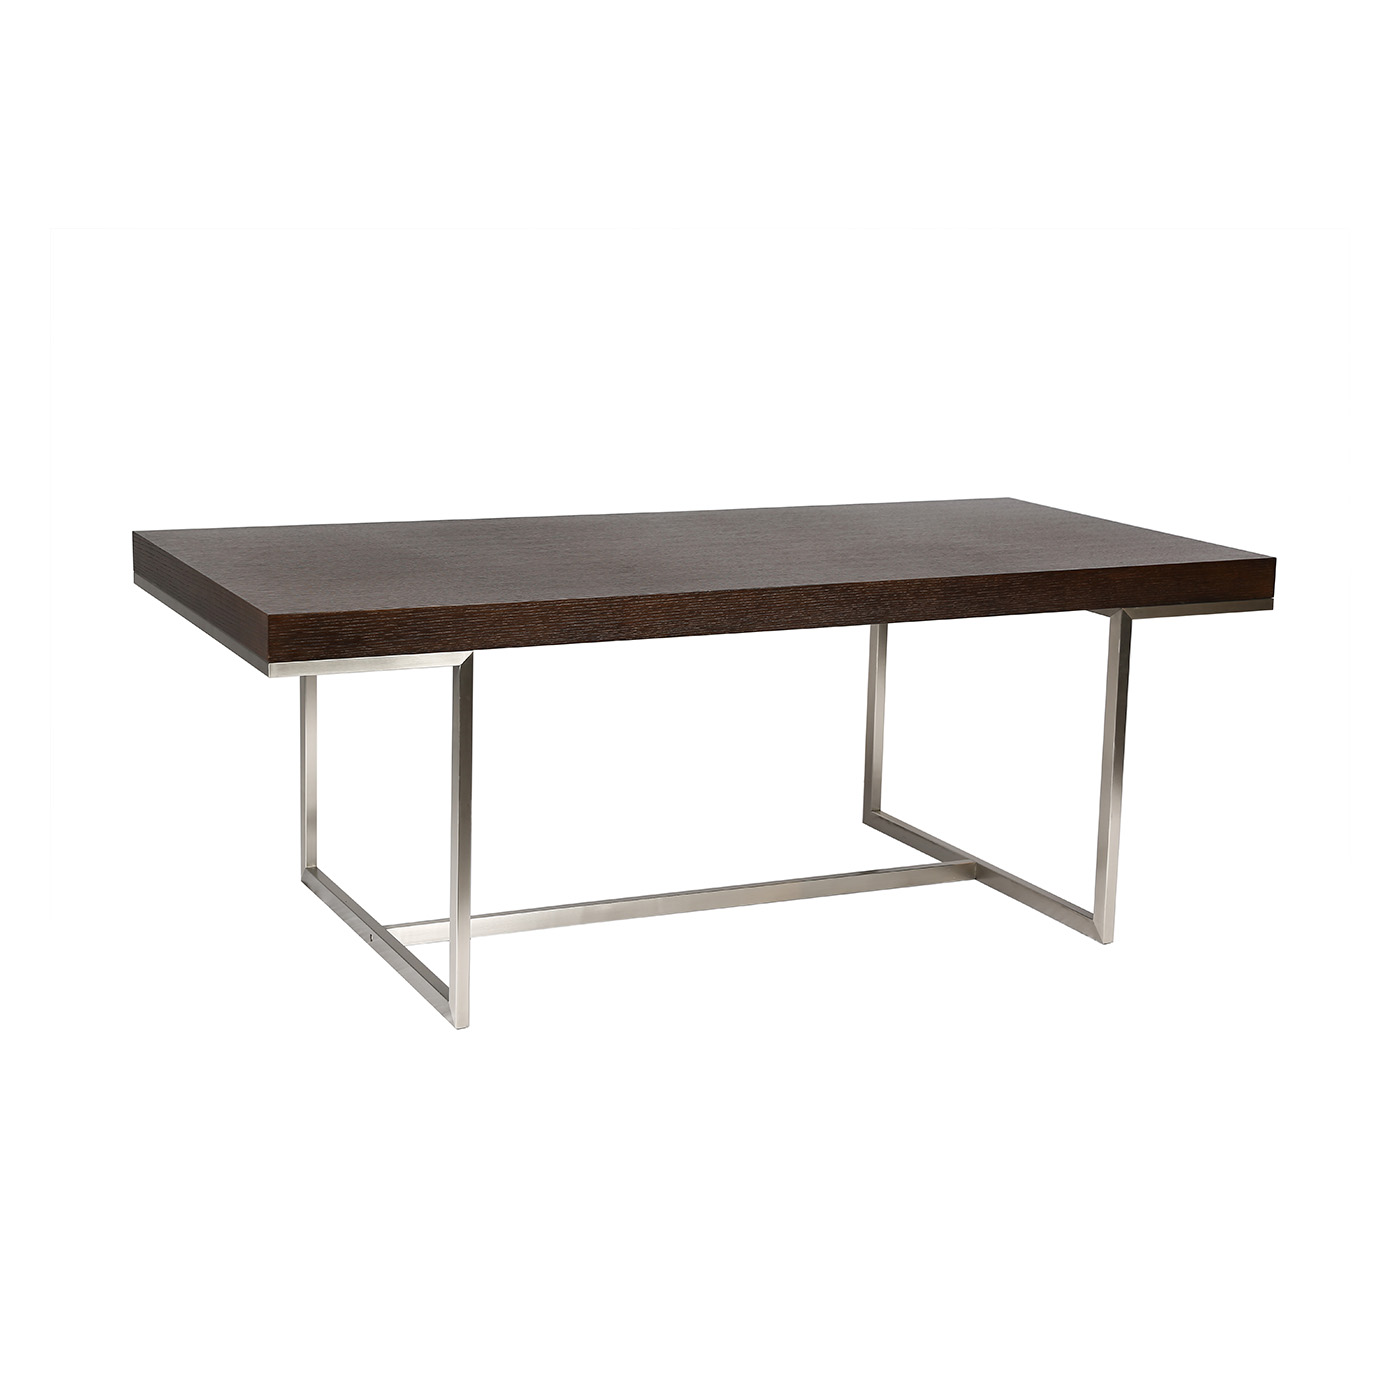 Lola Coffee Table With Storage: Lola Dining Table